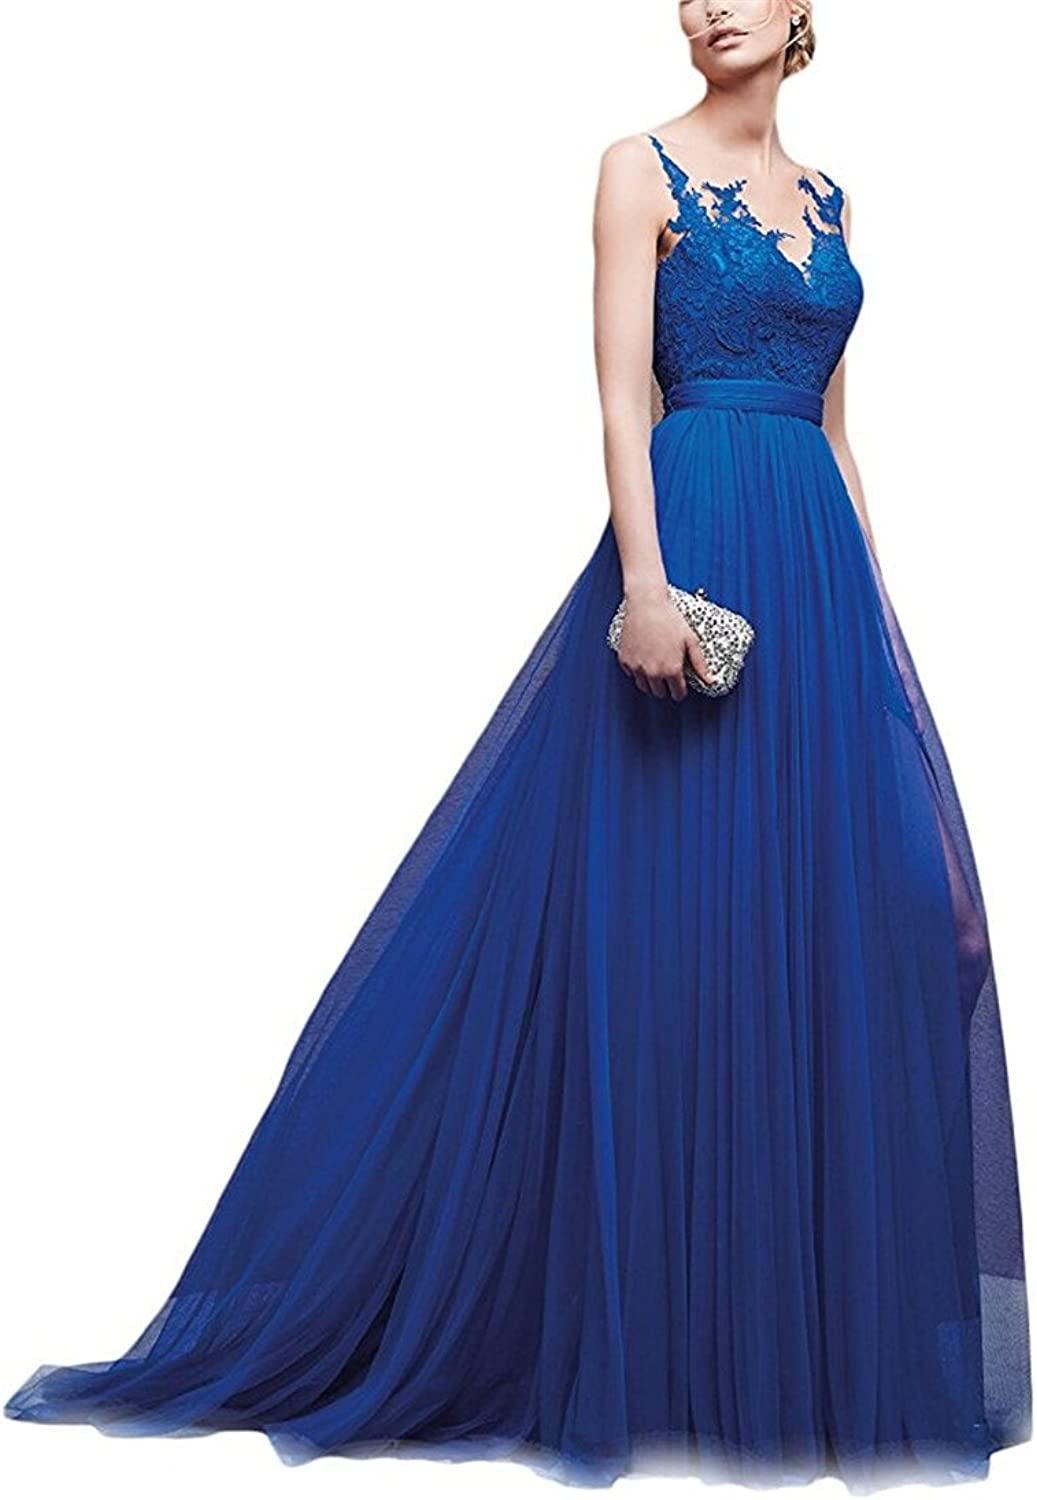 Homdor Elegant Backless Evening Dress with Lace Tulle ALine Formal Women's Prom Dresses